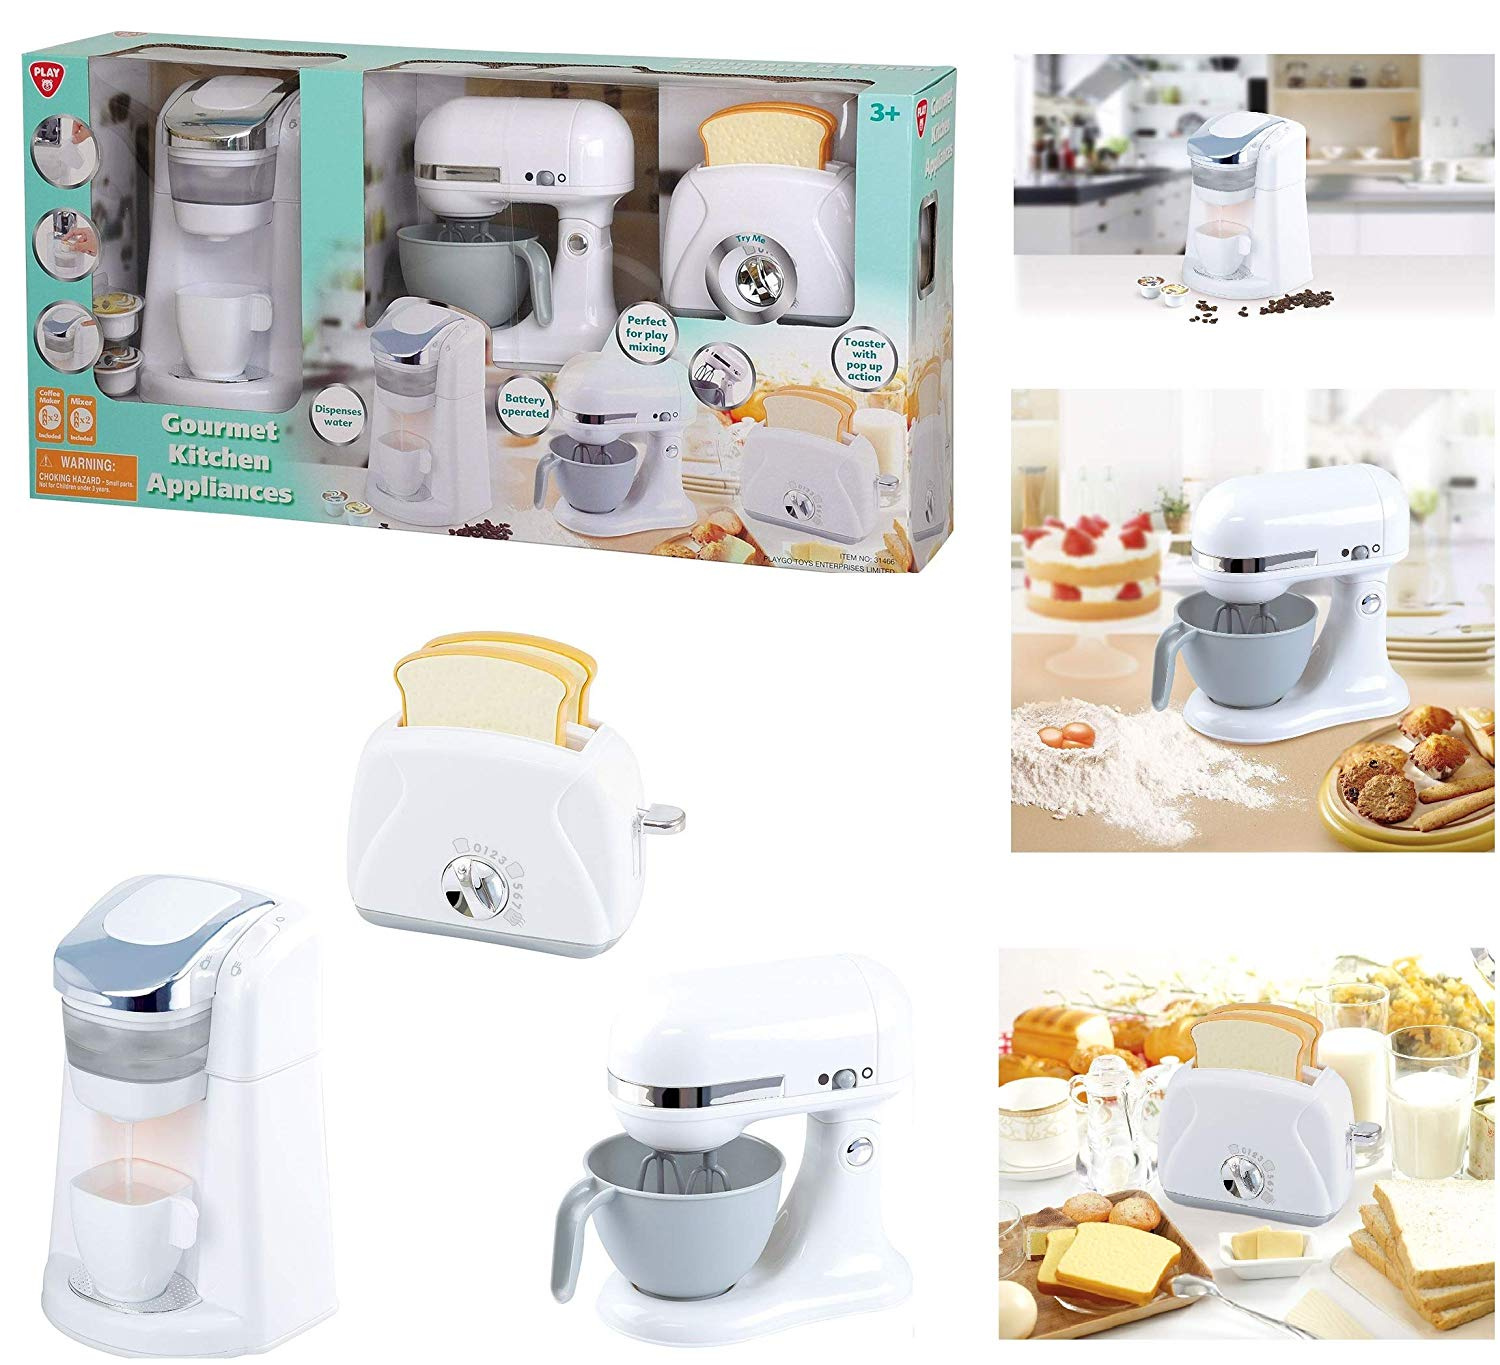 Playgo Gourmet Kitchen Appliances White Real Sounds And Play Features Includes Coffee Maker Mixer And Realistic Toaster